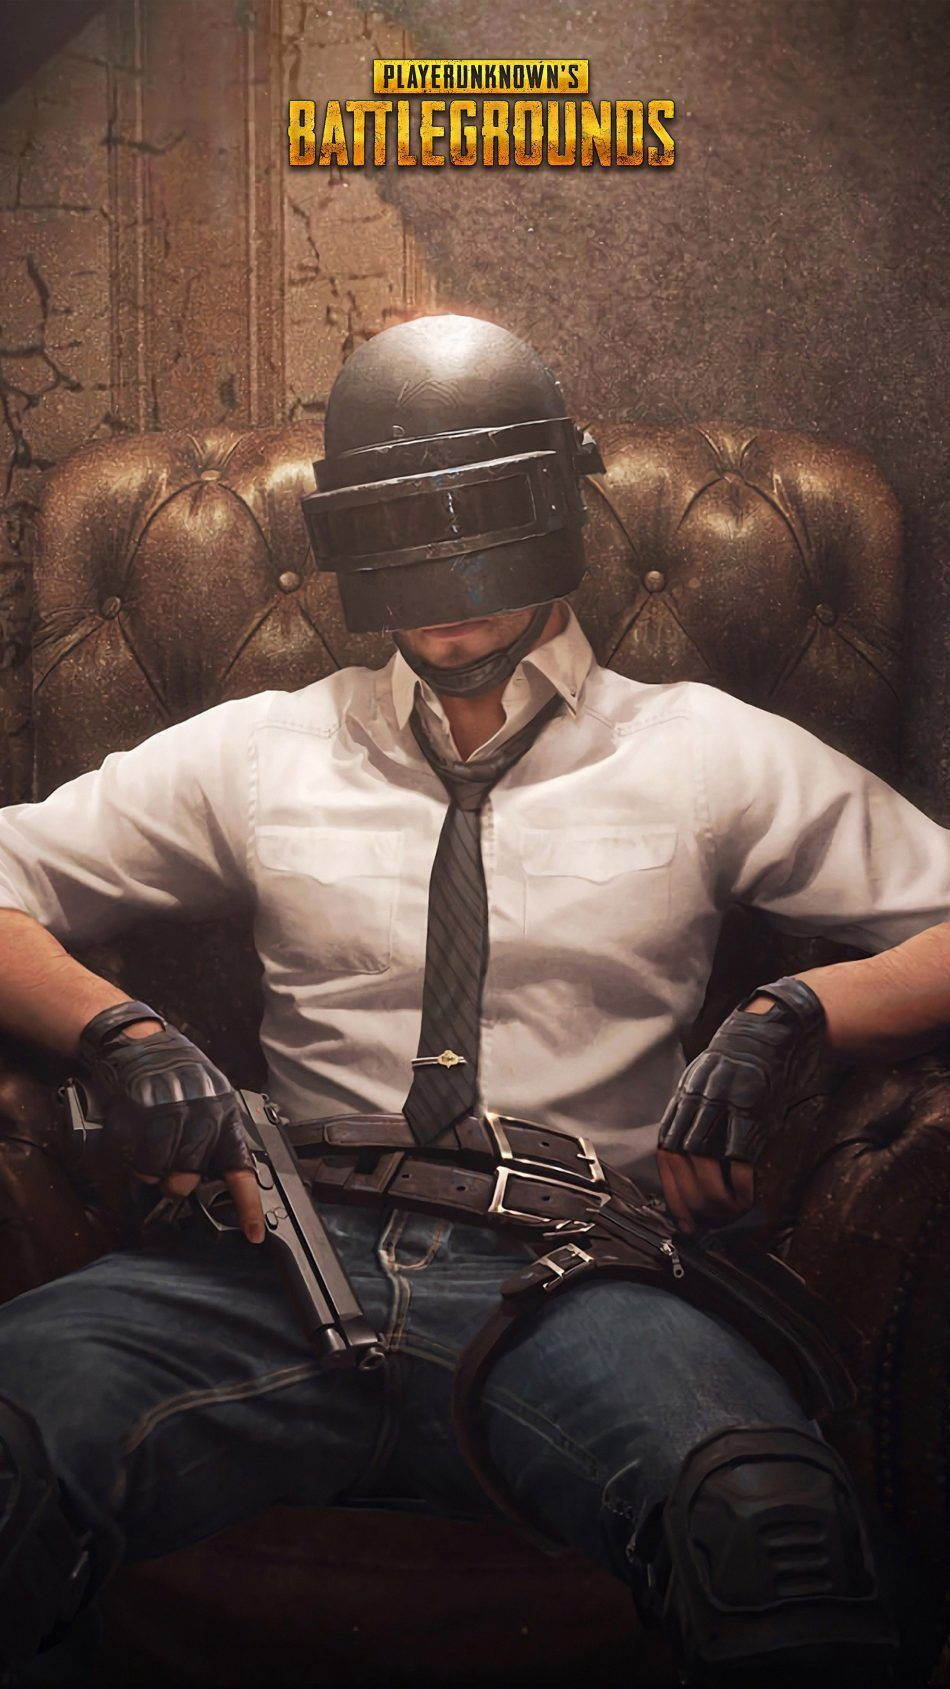 Pubg wallpaper Mobile wallpaper android, Mobile